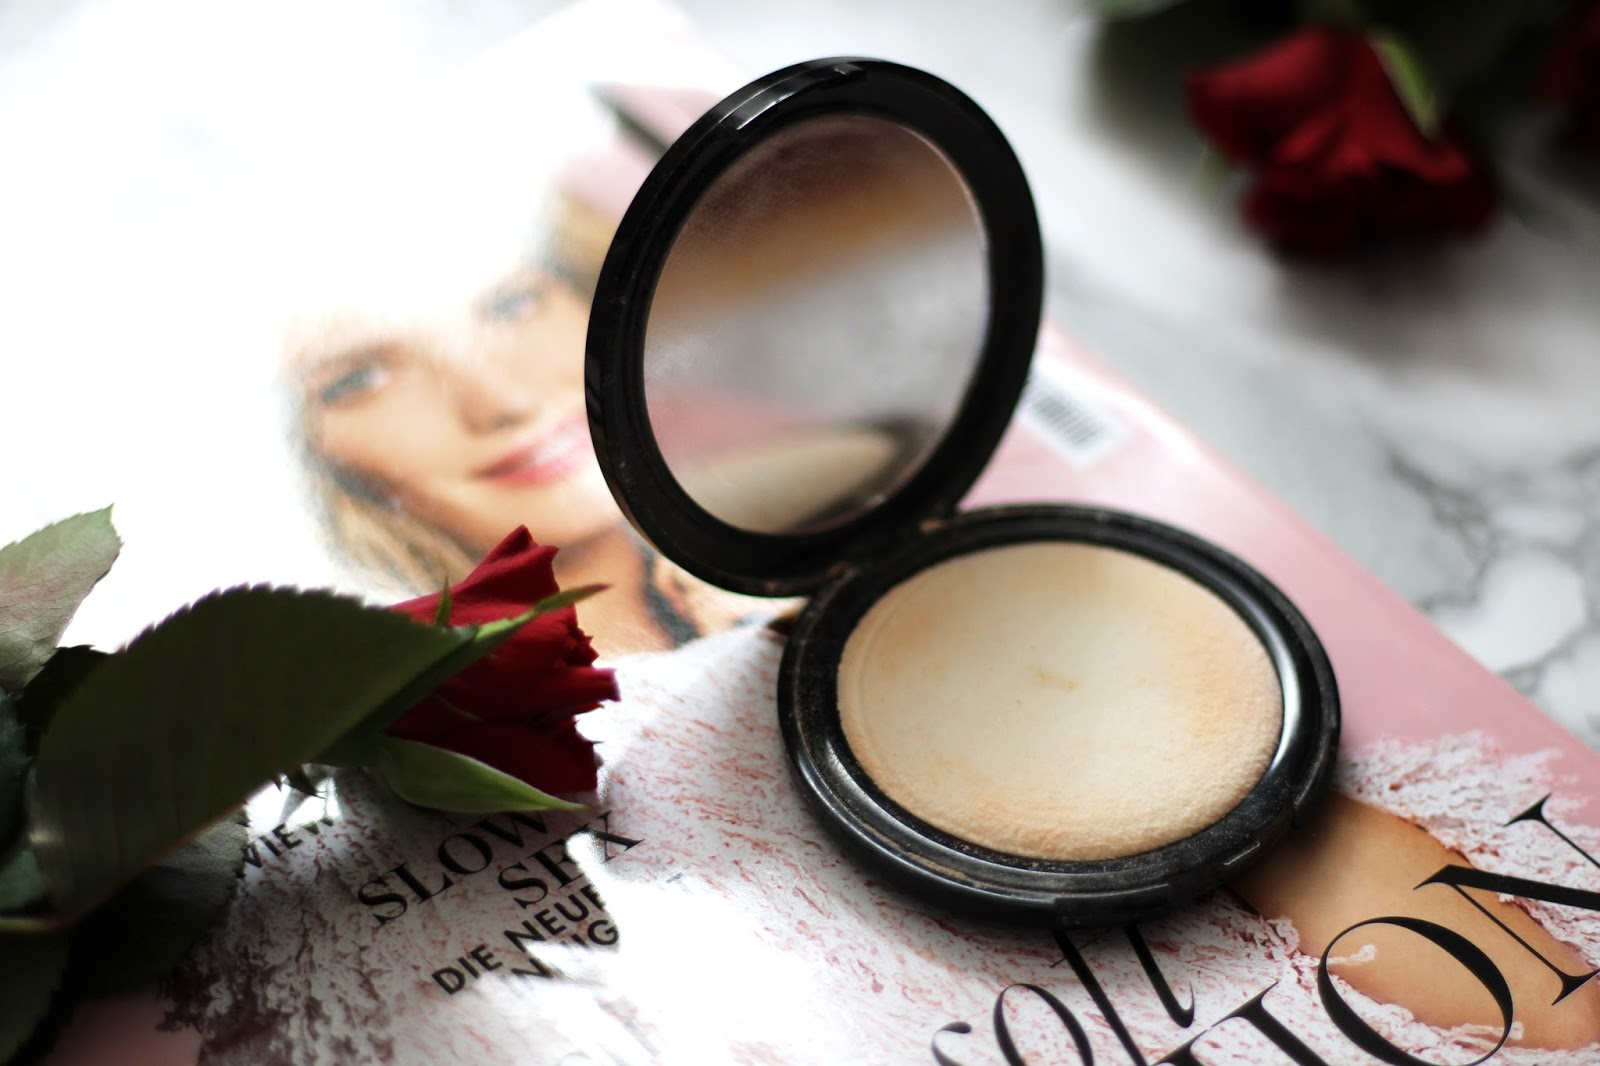 L.O.V Perfectitude Translucent Compact Powder Test